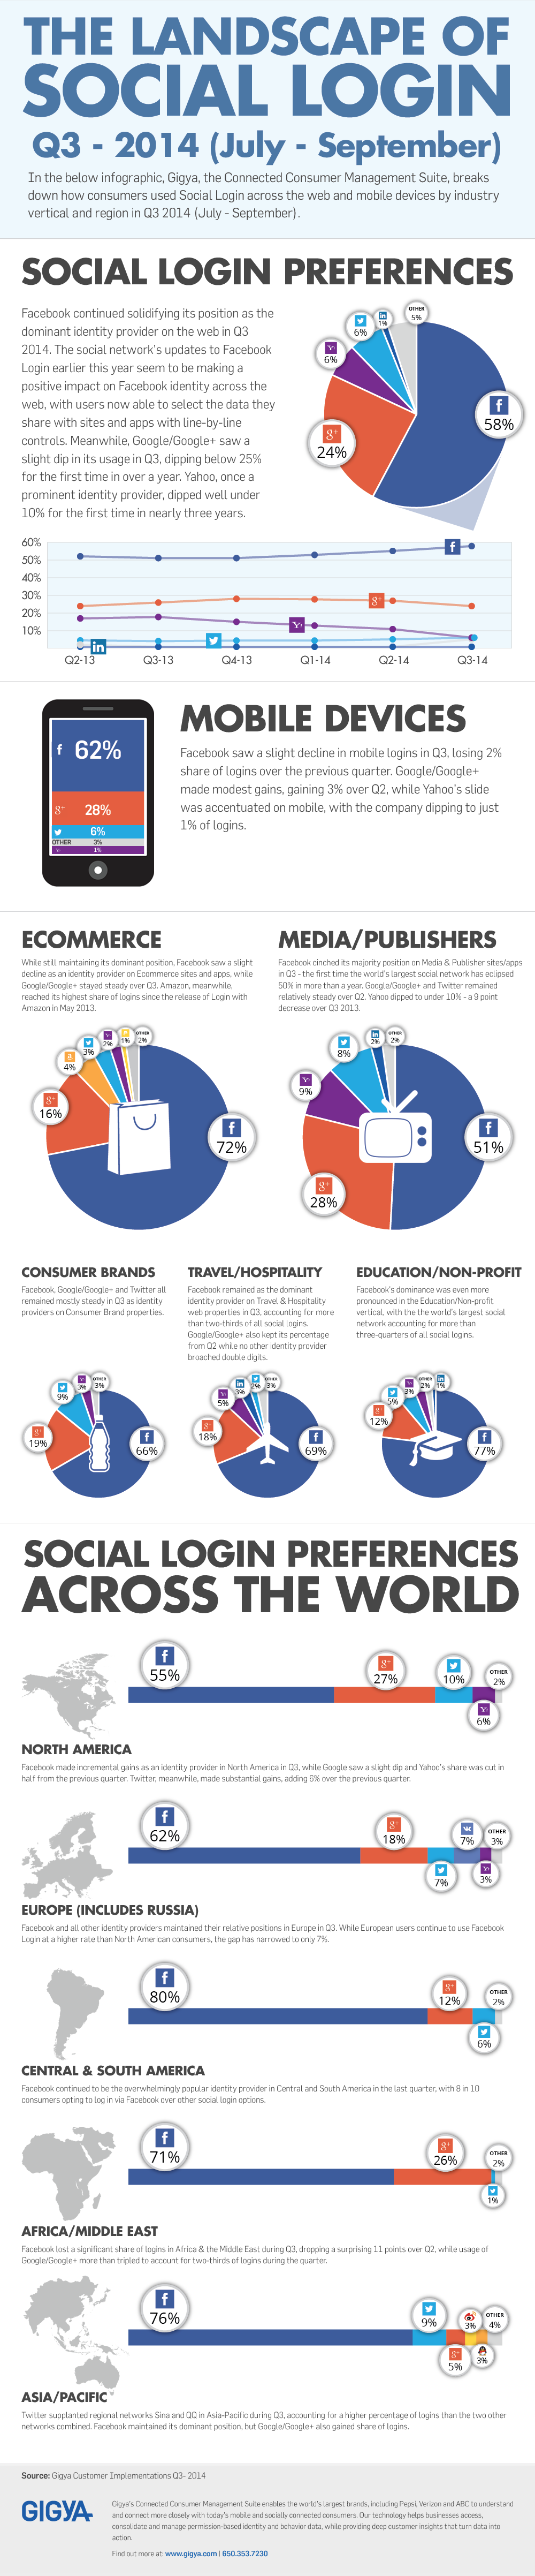 Social Login preferences across the world - #infographic